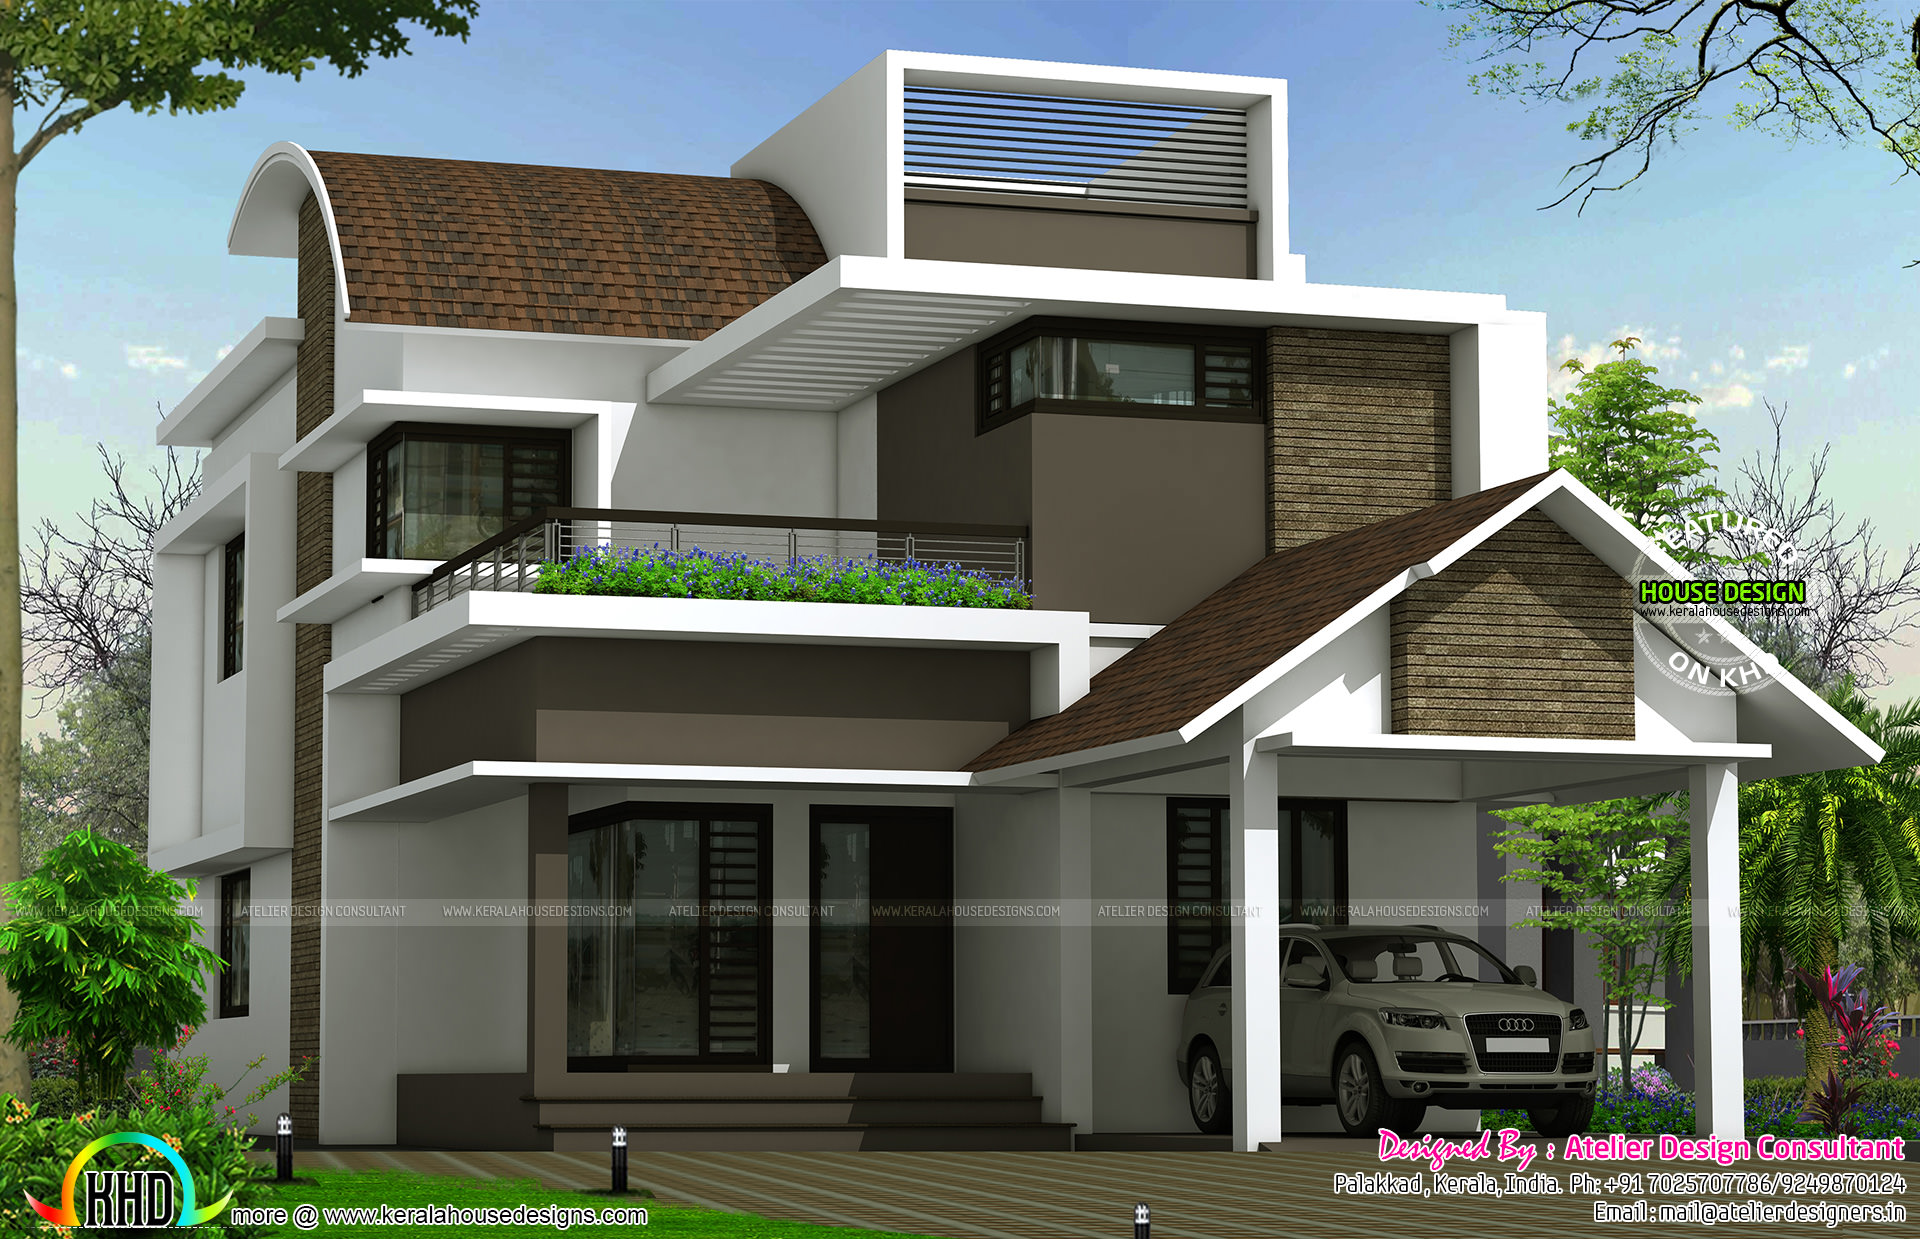 Curved Roof Mix Contemporary 2620 Sq Ft Home Kerala Home